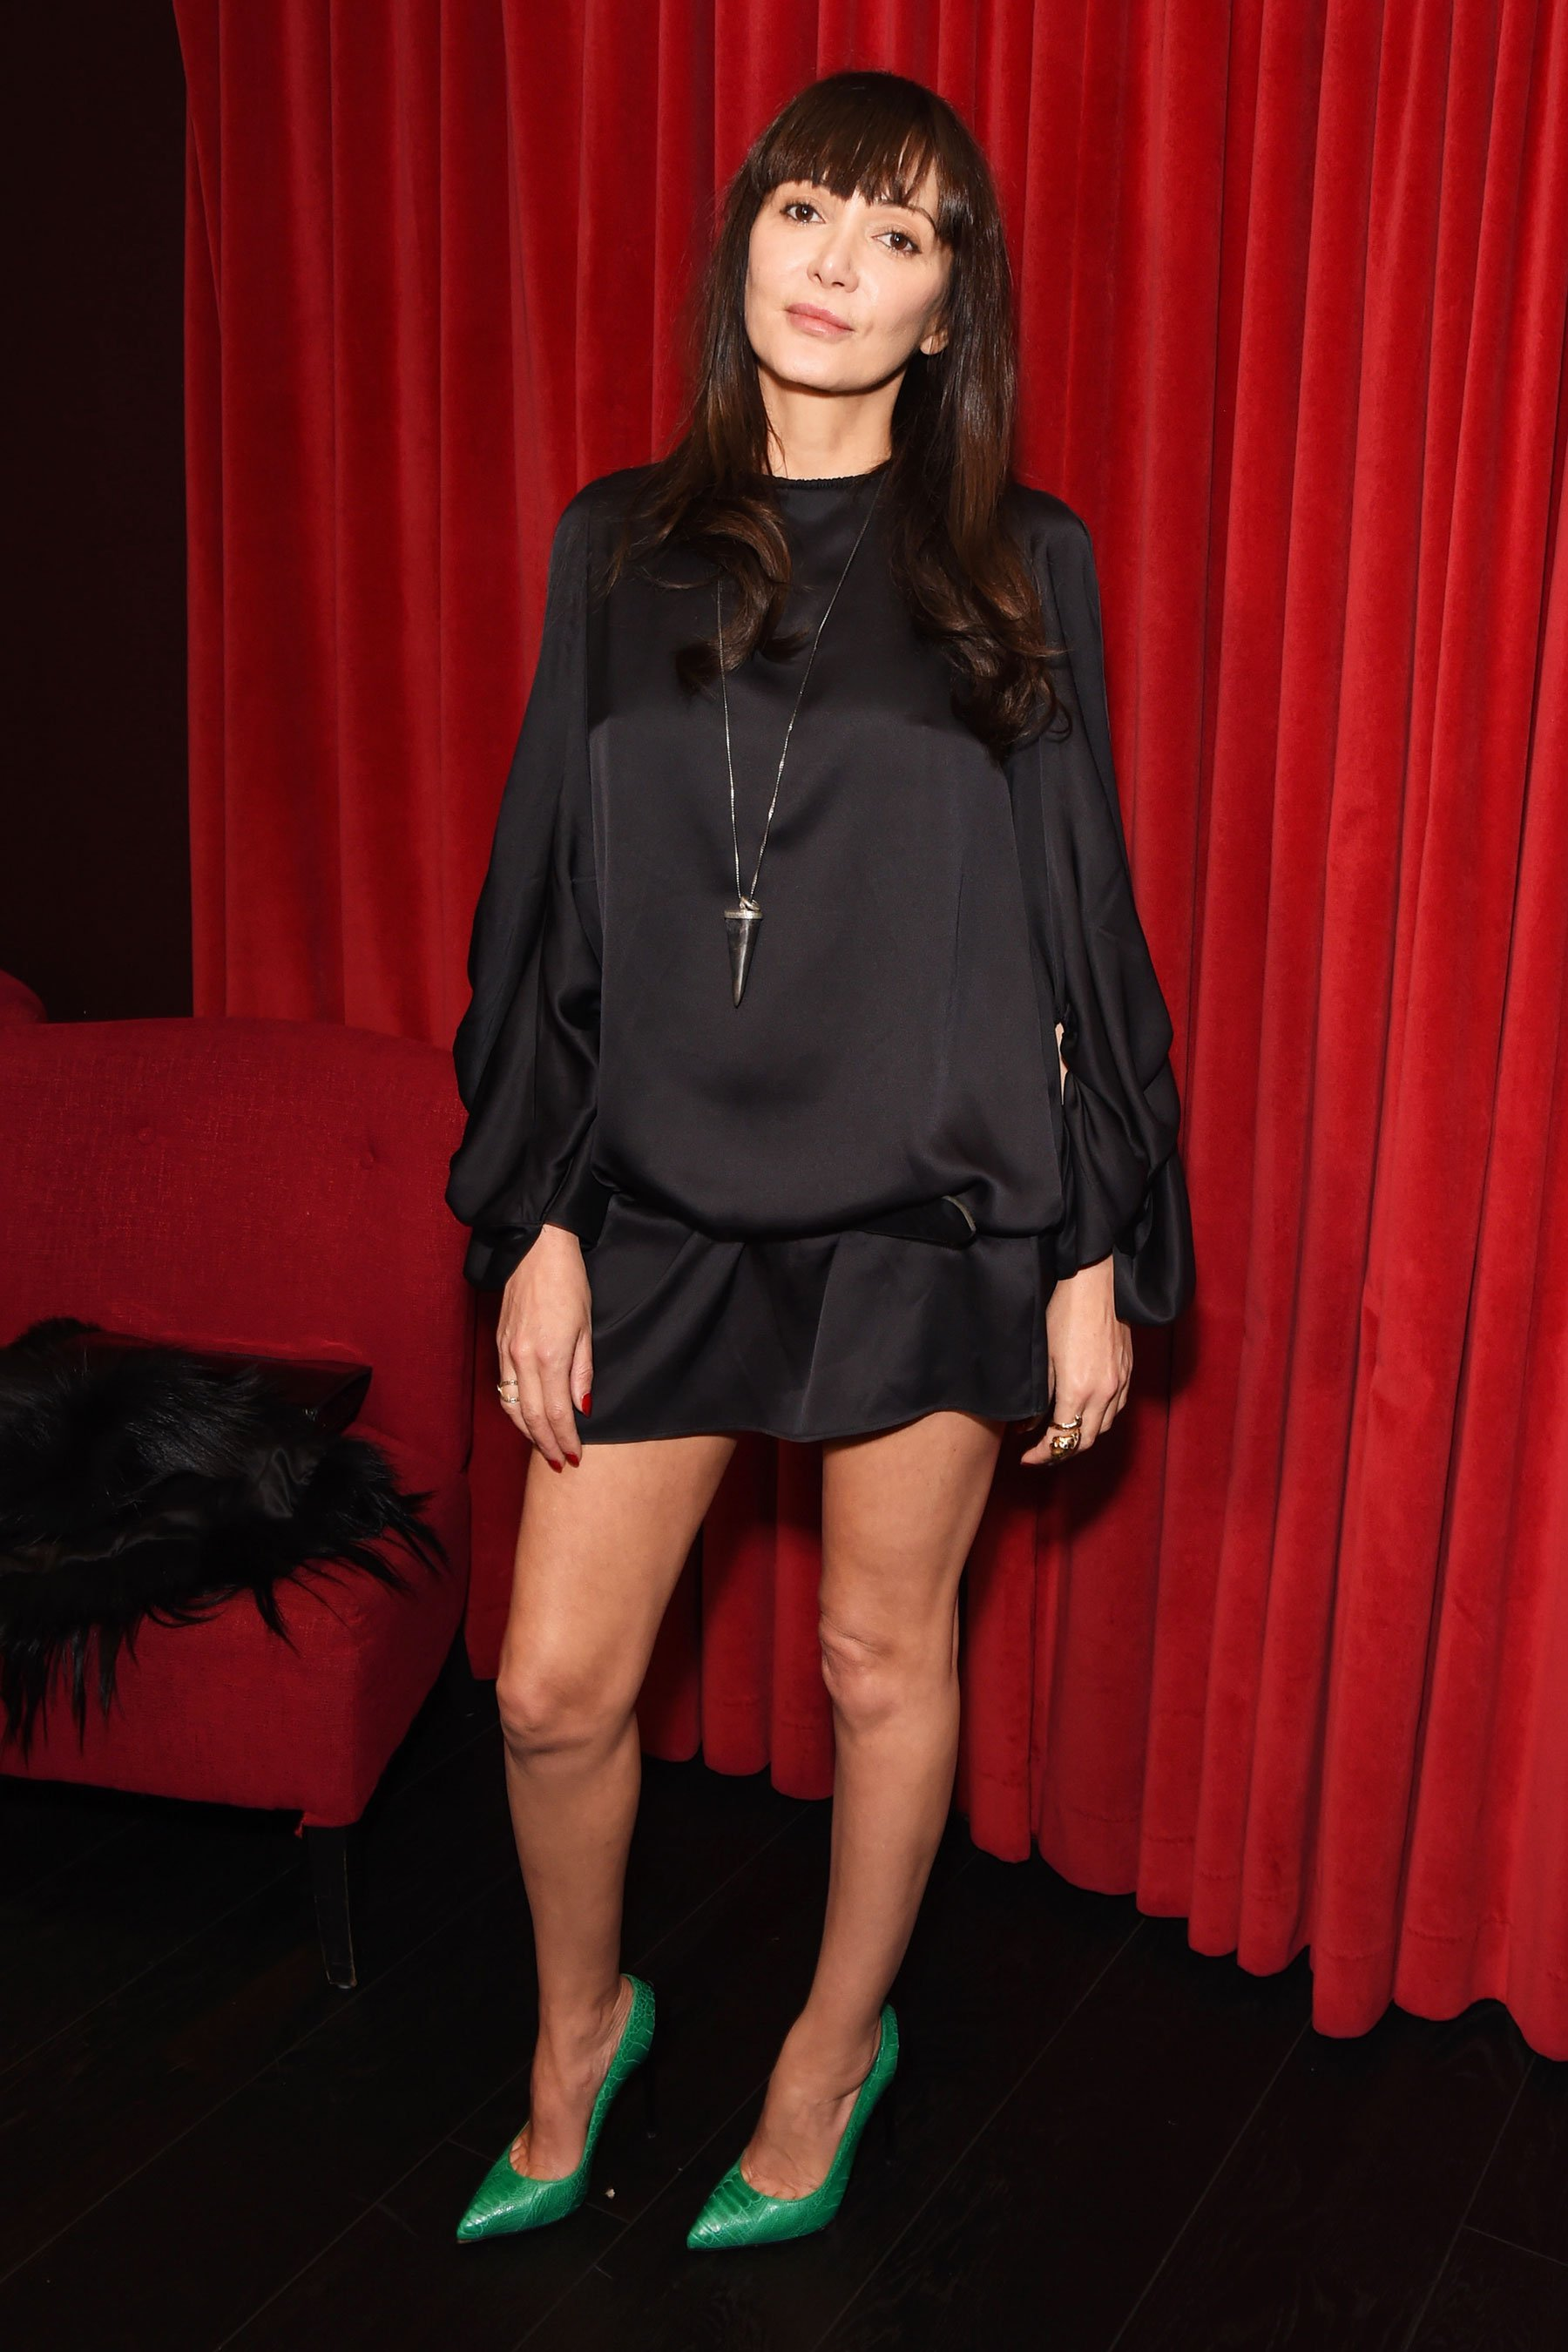 Ladies of London Star Annabelle Neilson Attended Ex's Wedding Days Before Dying of Heart Attack